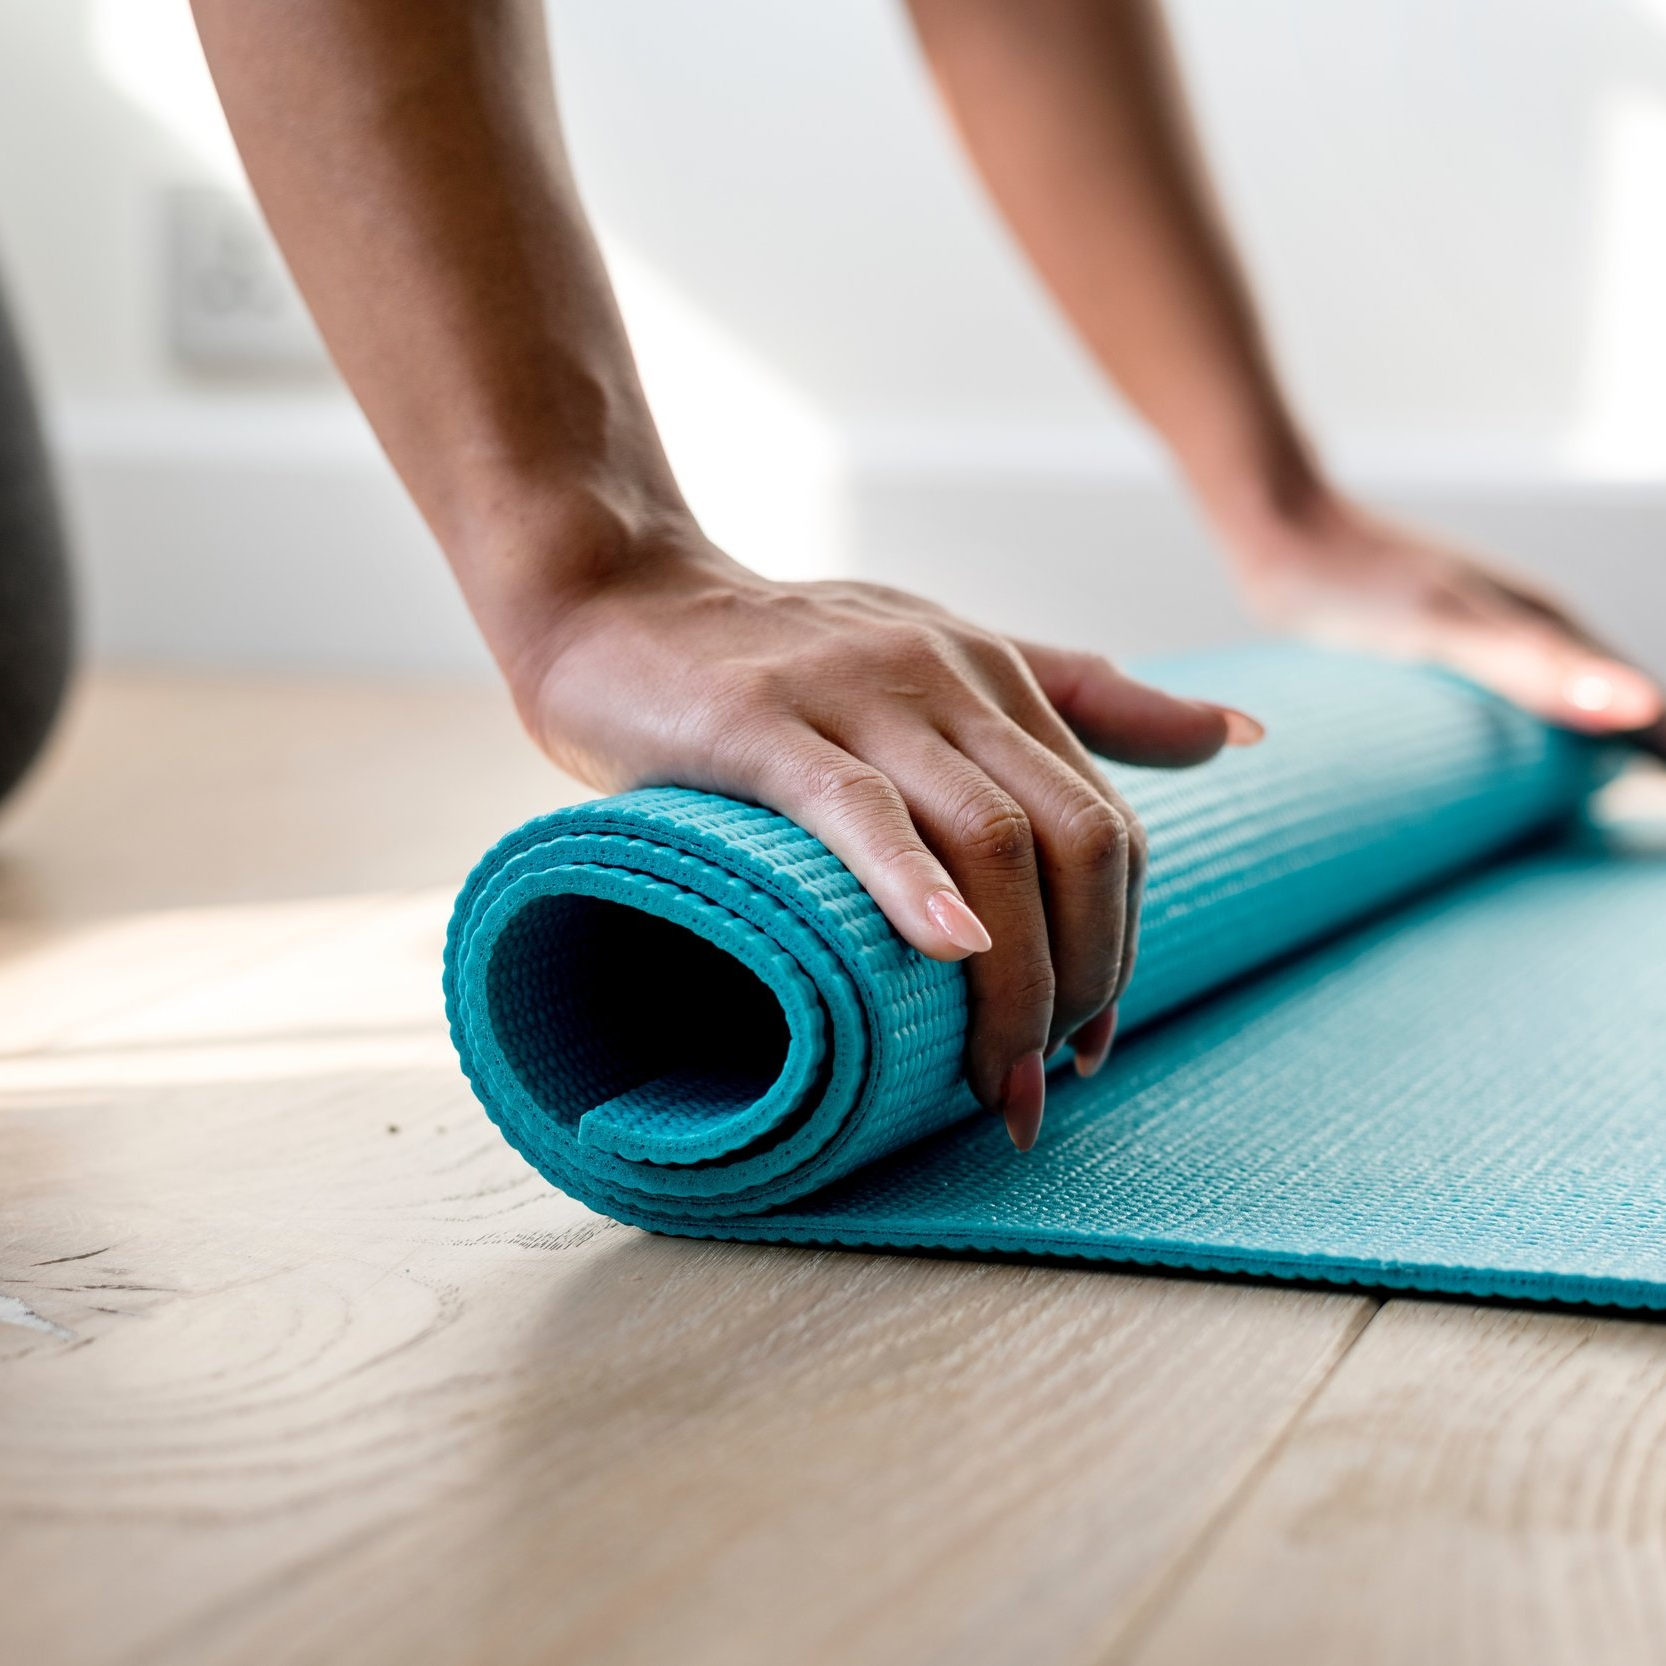 The Fitness - Less sweat and more restoration, Deep Dive combines twice daily yoga sessions with shorter hikes to stimulate your metabolism, promote lymphatic drainage and release stored tension.